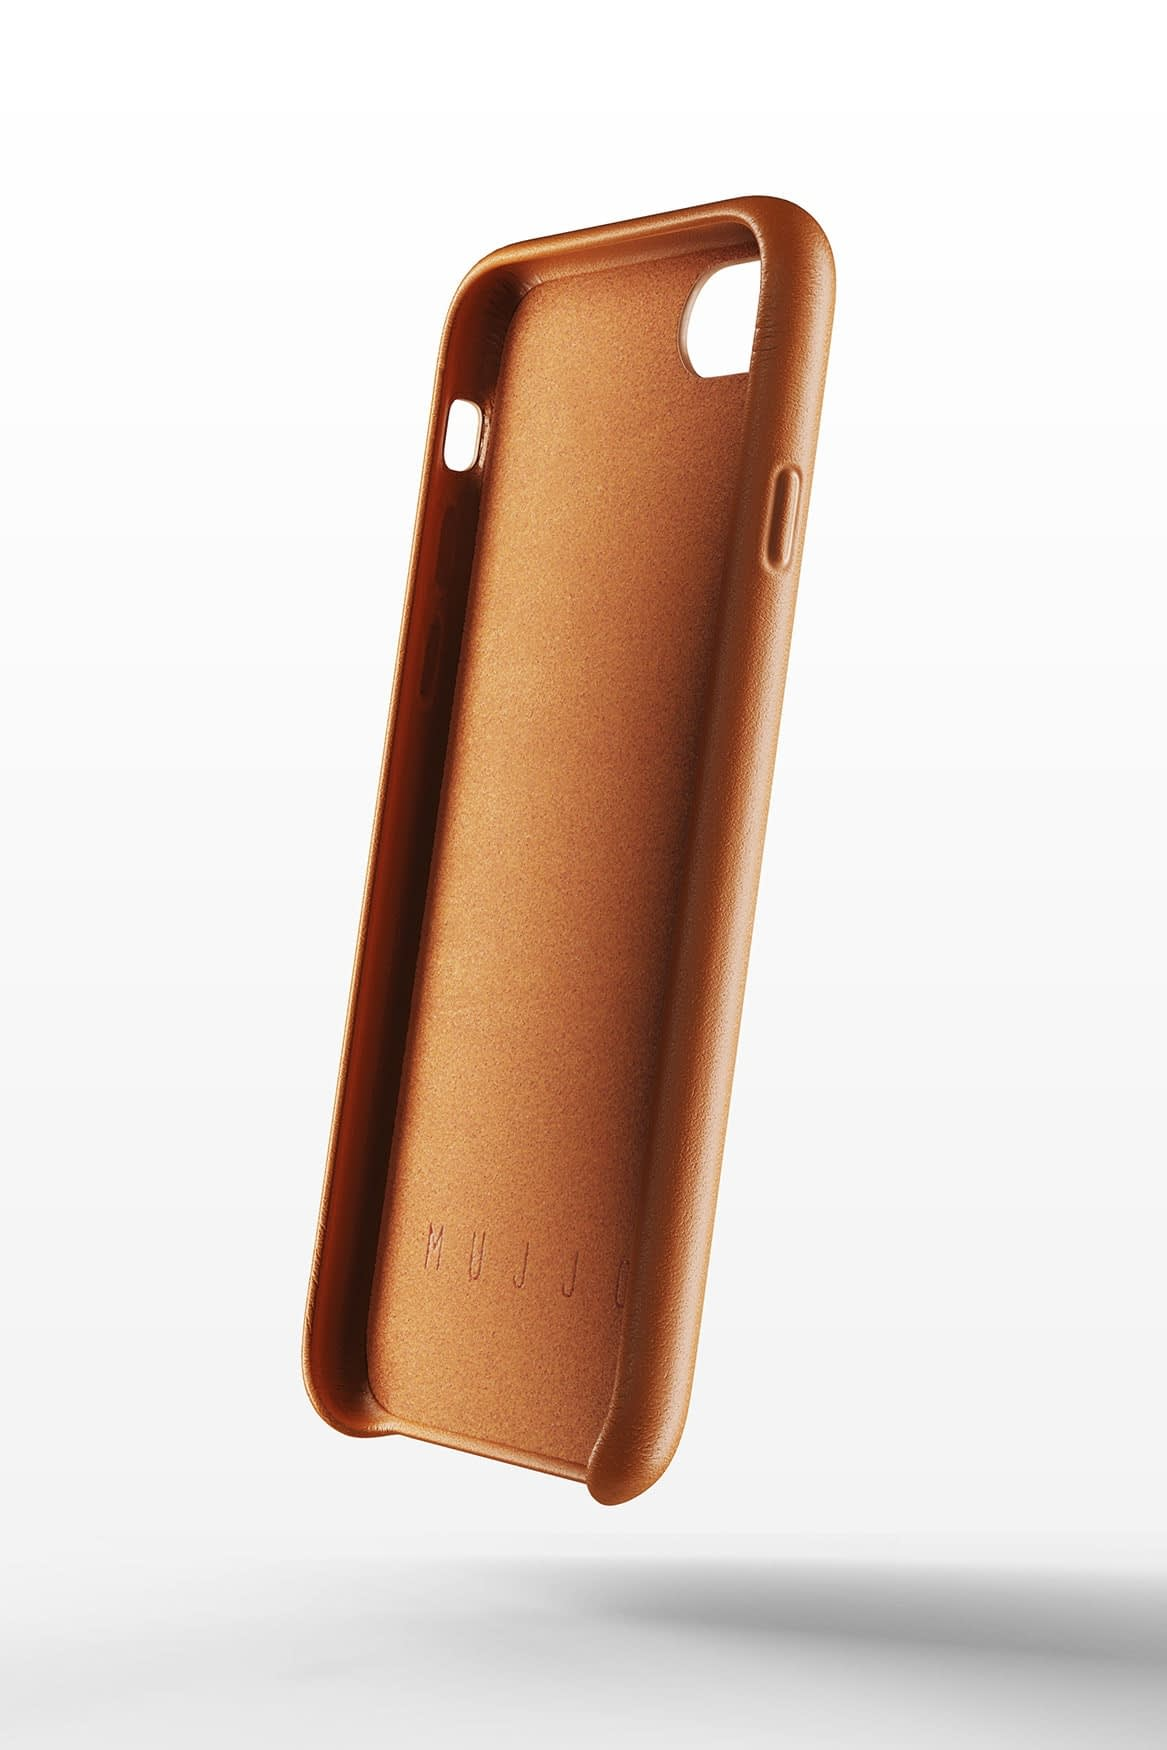 Full leather wallet case for iPhone 8 Tan 02 1